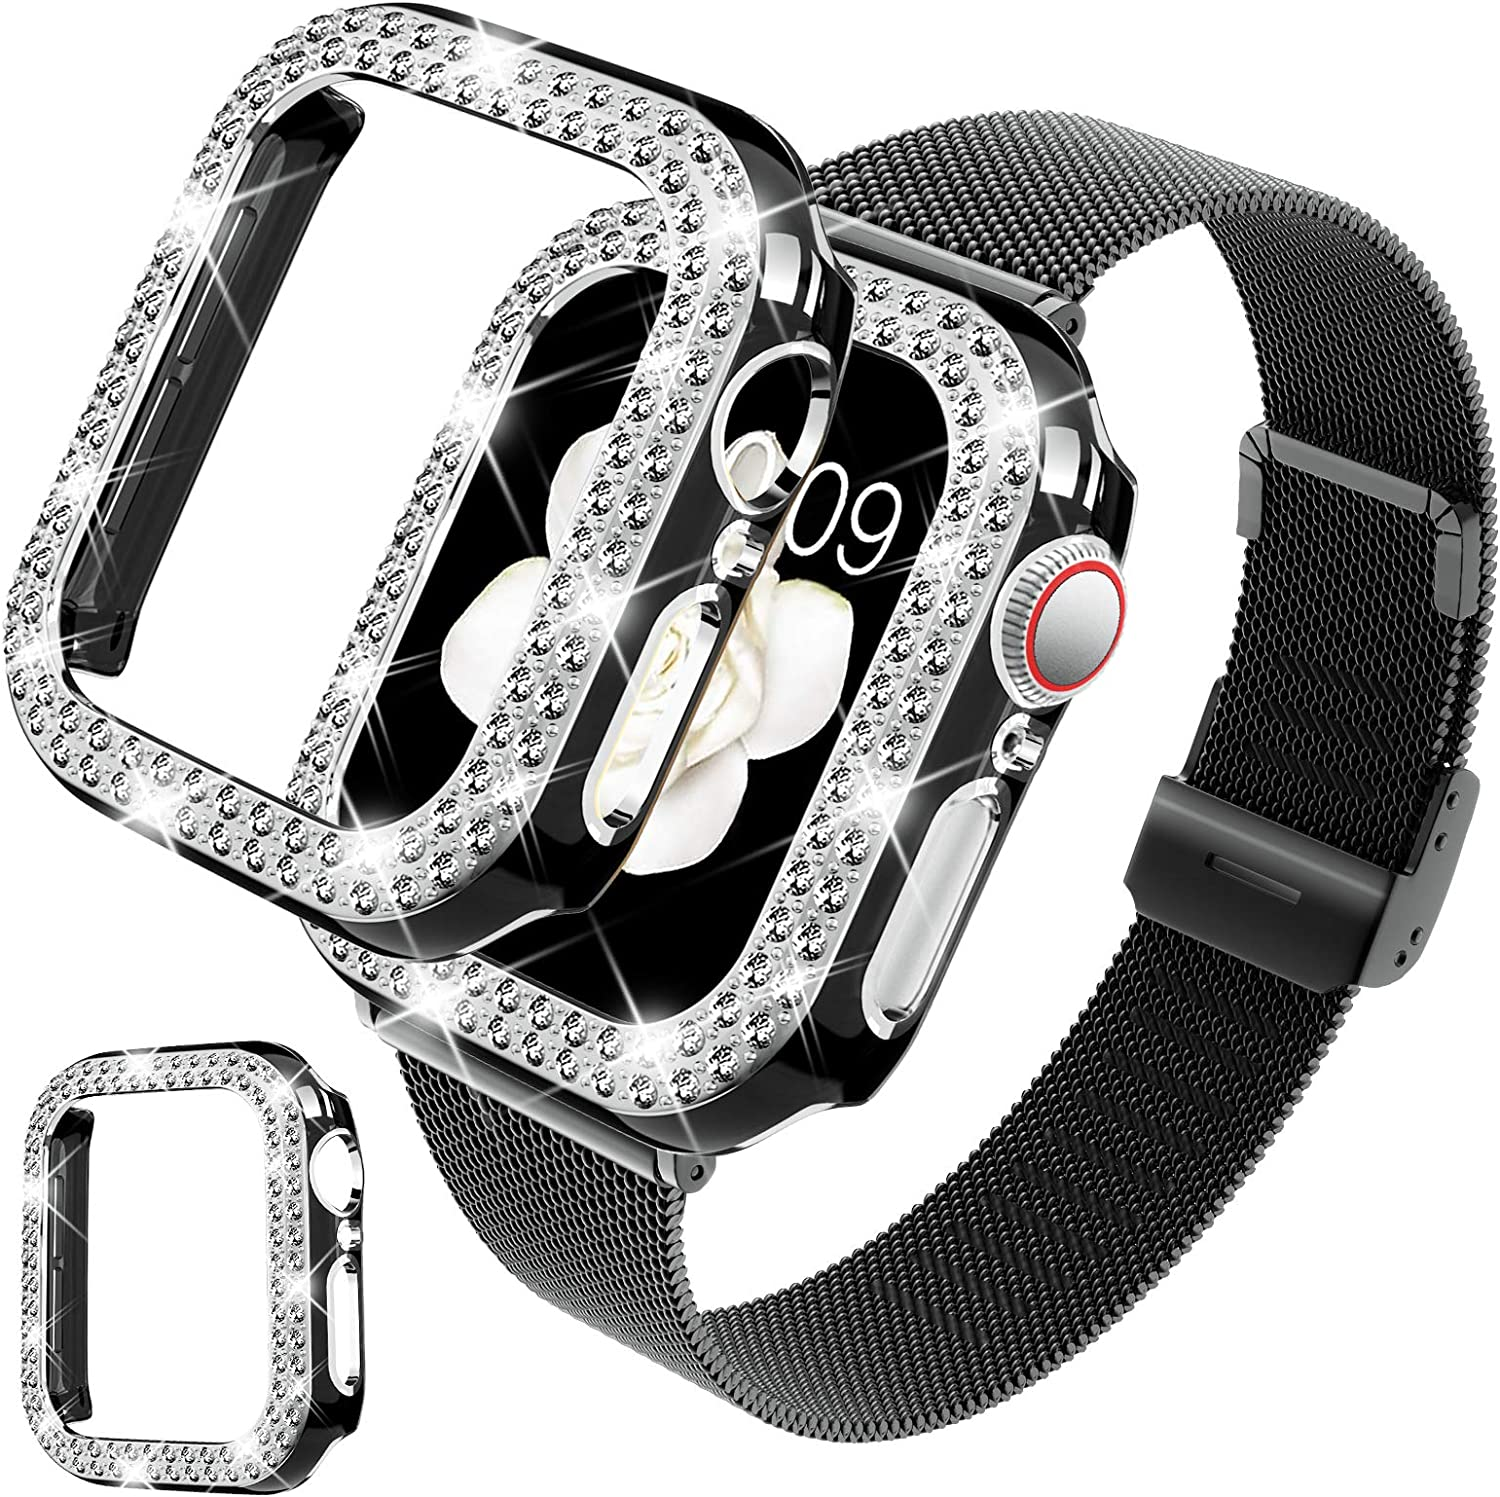 DABAOZA Compatible for Apple Watch Band 38mm with Case, Stainless Steel Mesh Loop Strap Replacement Wristband with Shiny Protective Bling Bumper Frame Cover for iWatch Series 3/2/1 (38mm, Black-Black)